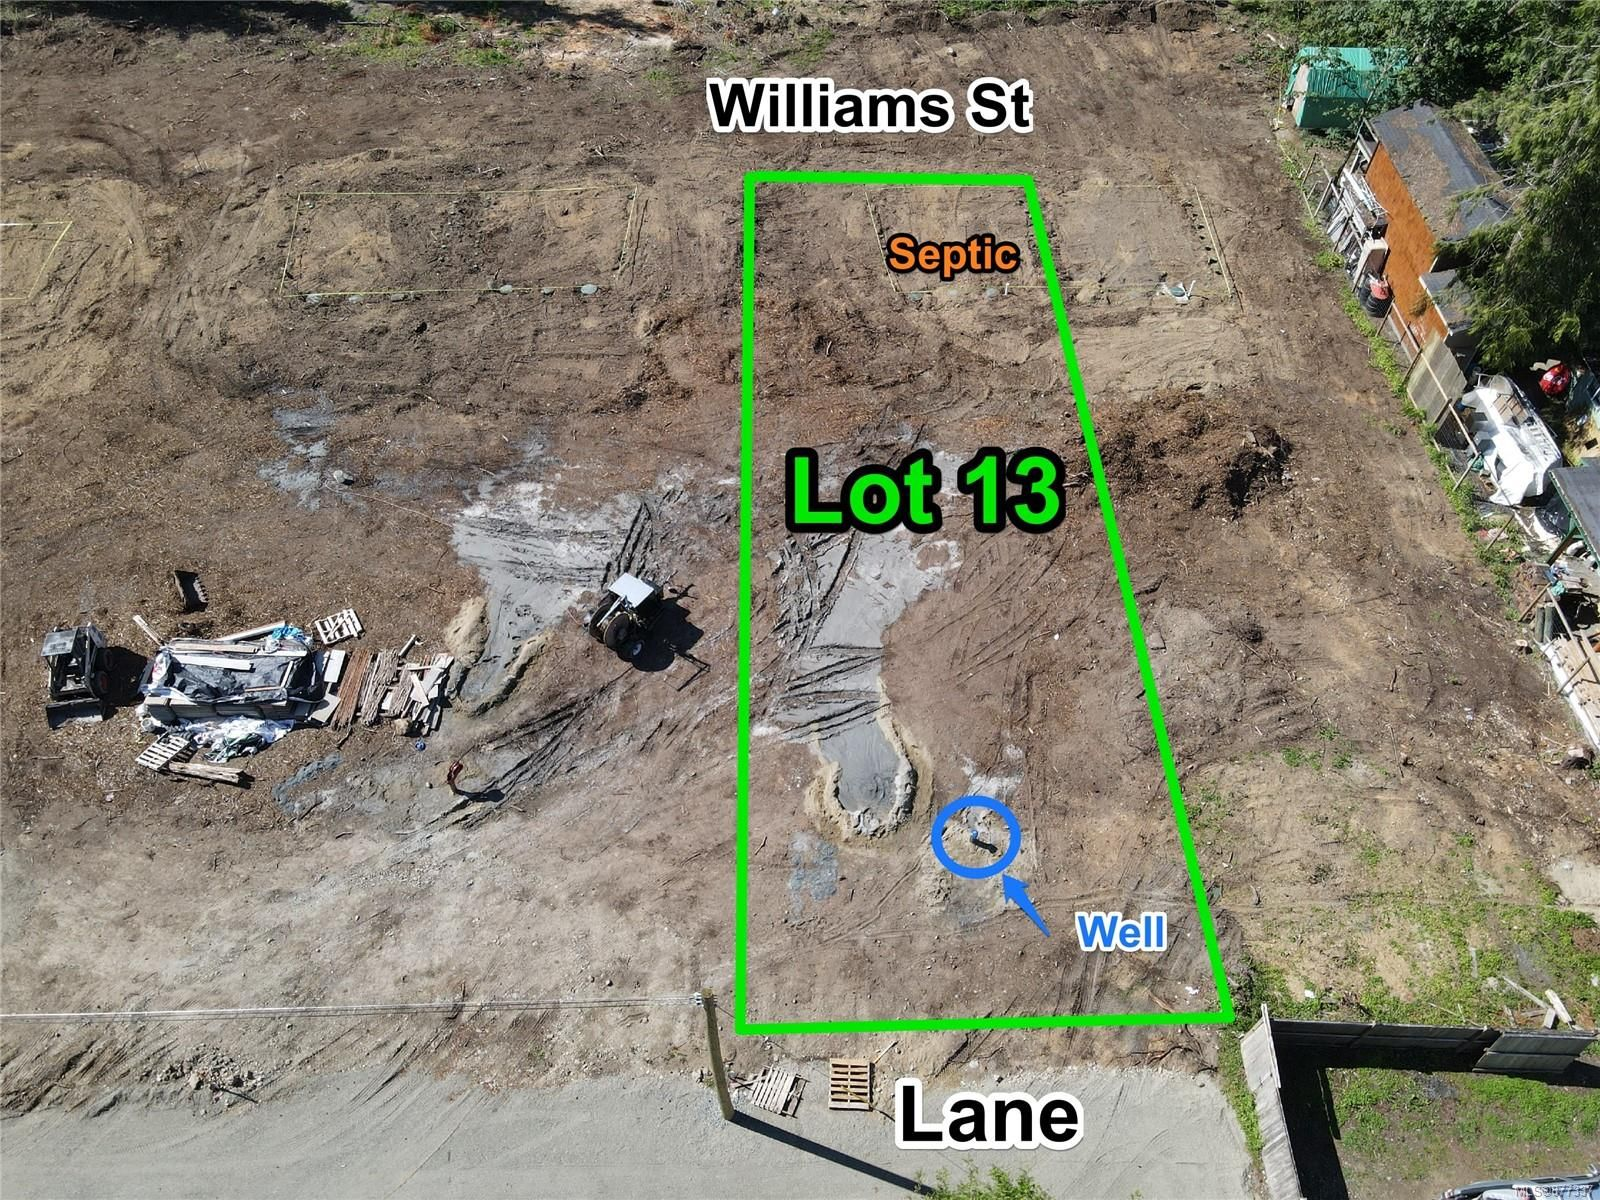 Main Photo: Lot 13 Williams St in : PQ Errington/Coombs/Hilliers Land for sale (Parksville/Qualicum)  : MLS®# 877337